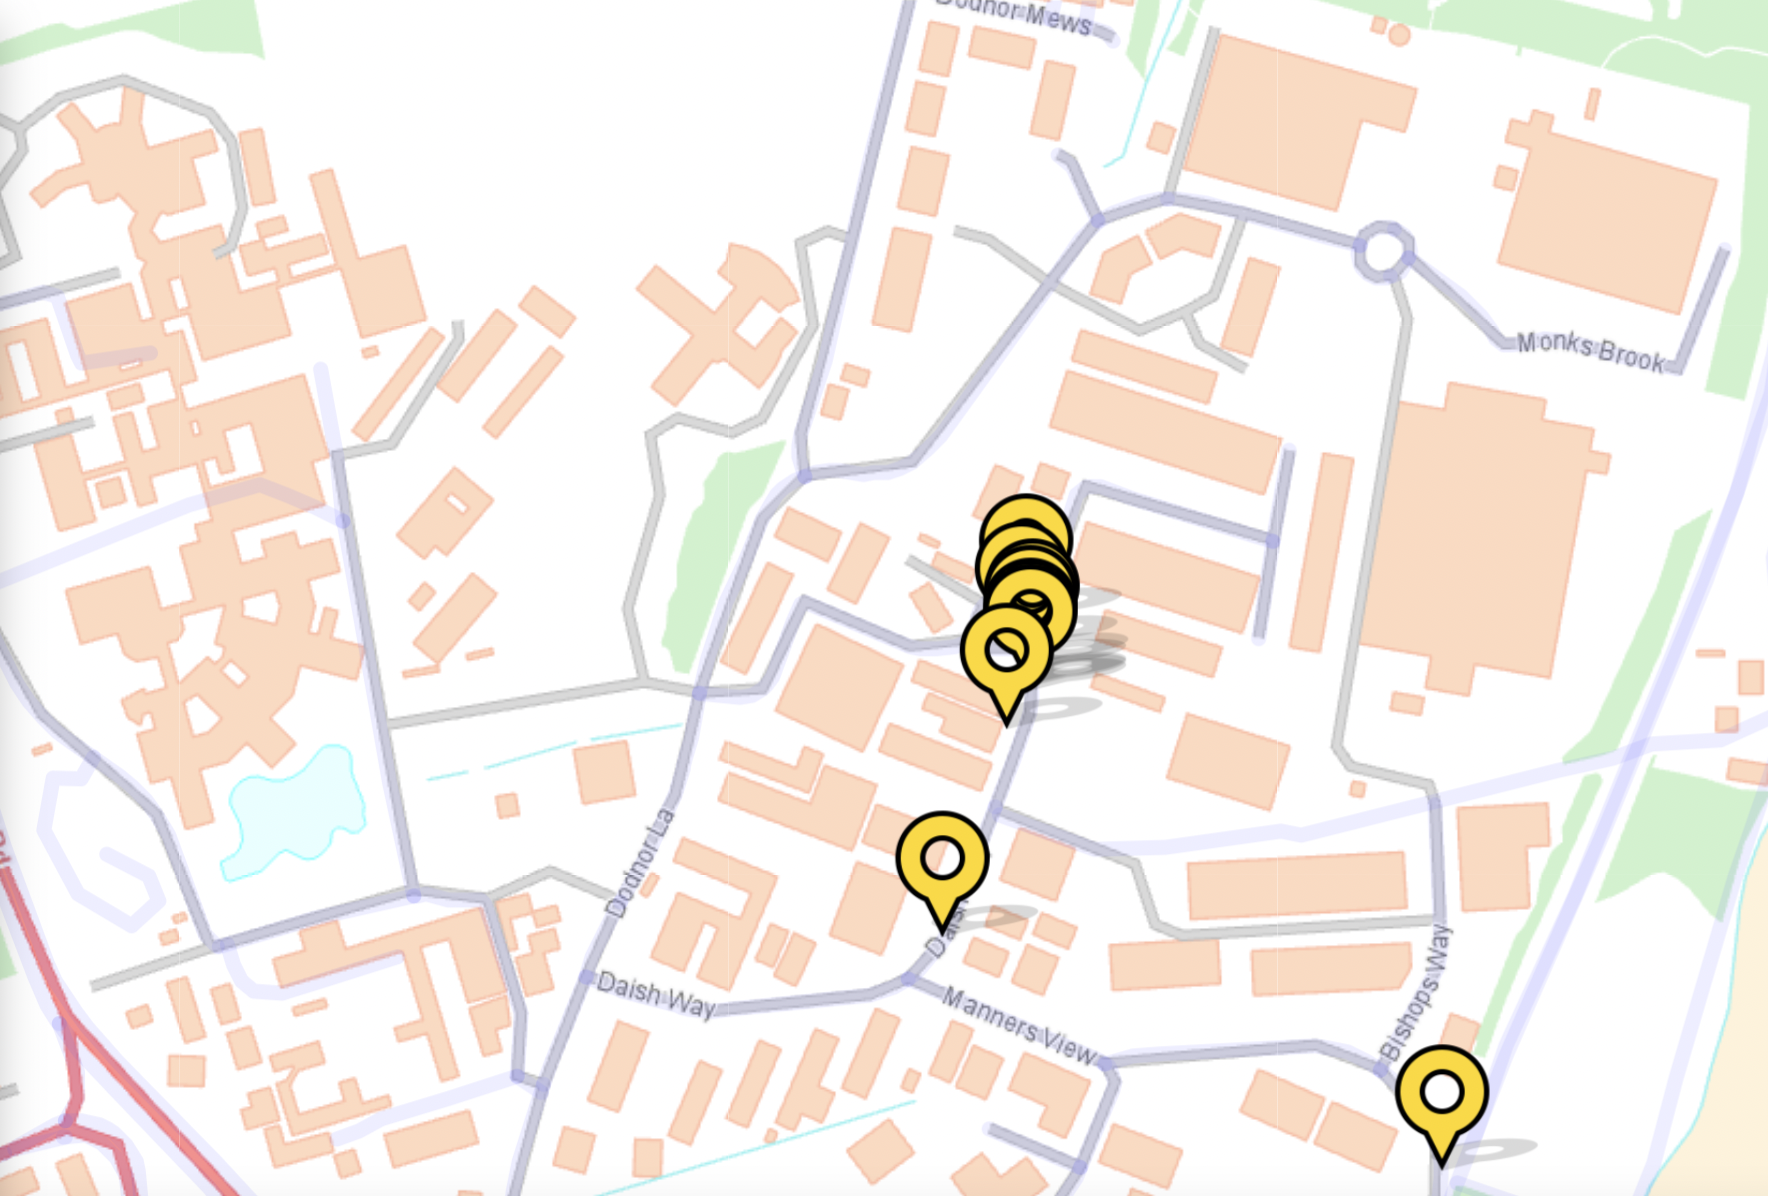 Map with yellow pins marking the location of reported problems